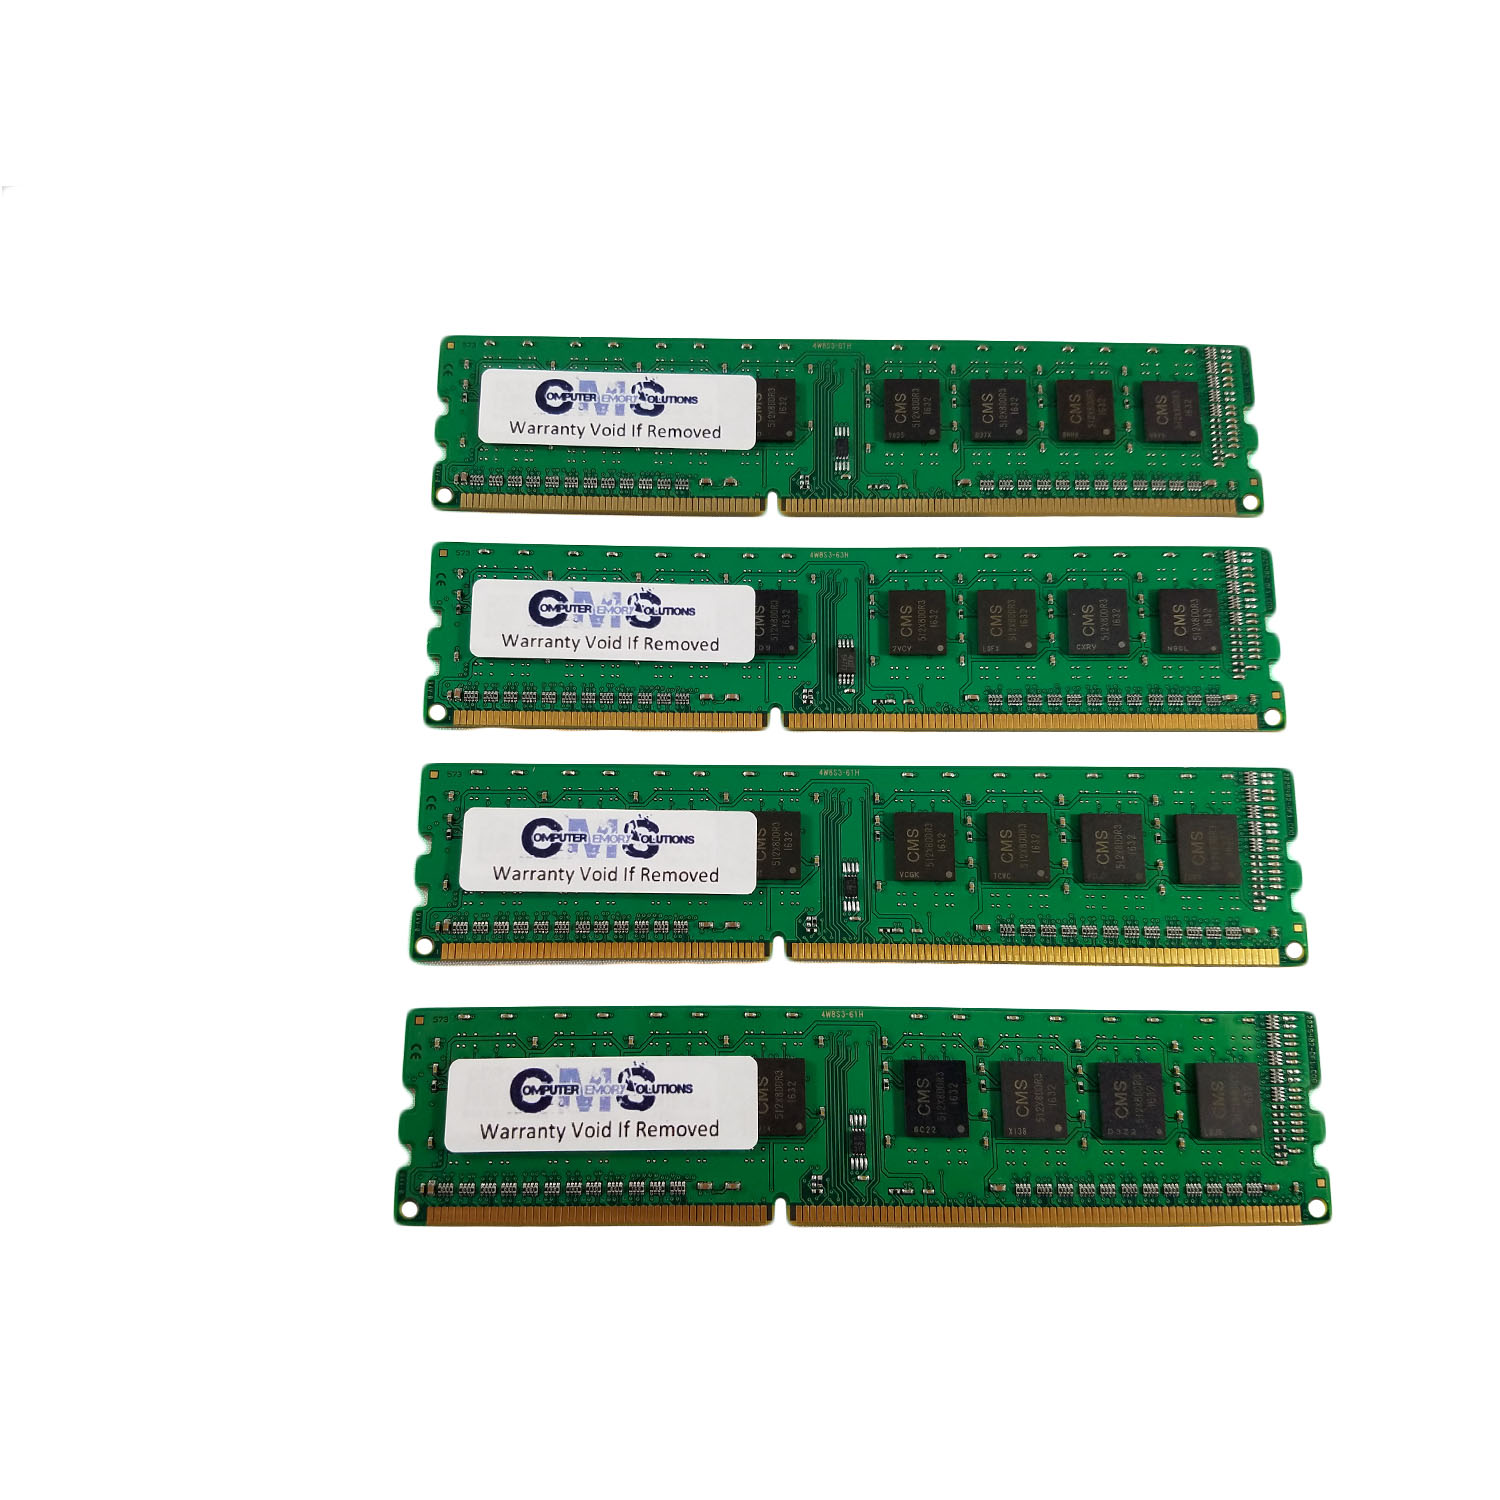 32GB (4x8GB) Memory RAM Compatible with Dell Optiplex 790 MT/DT/SFF Desktops